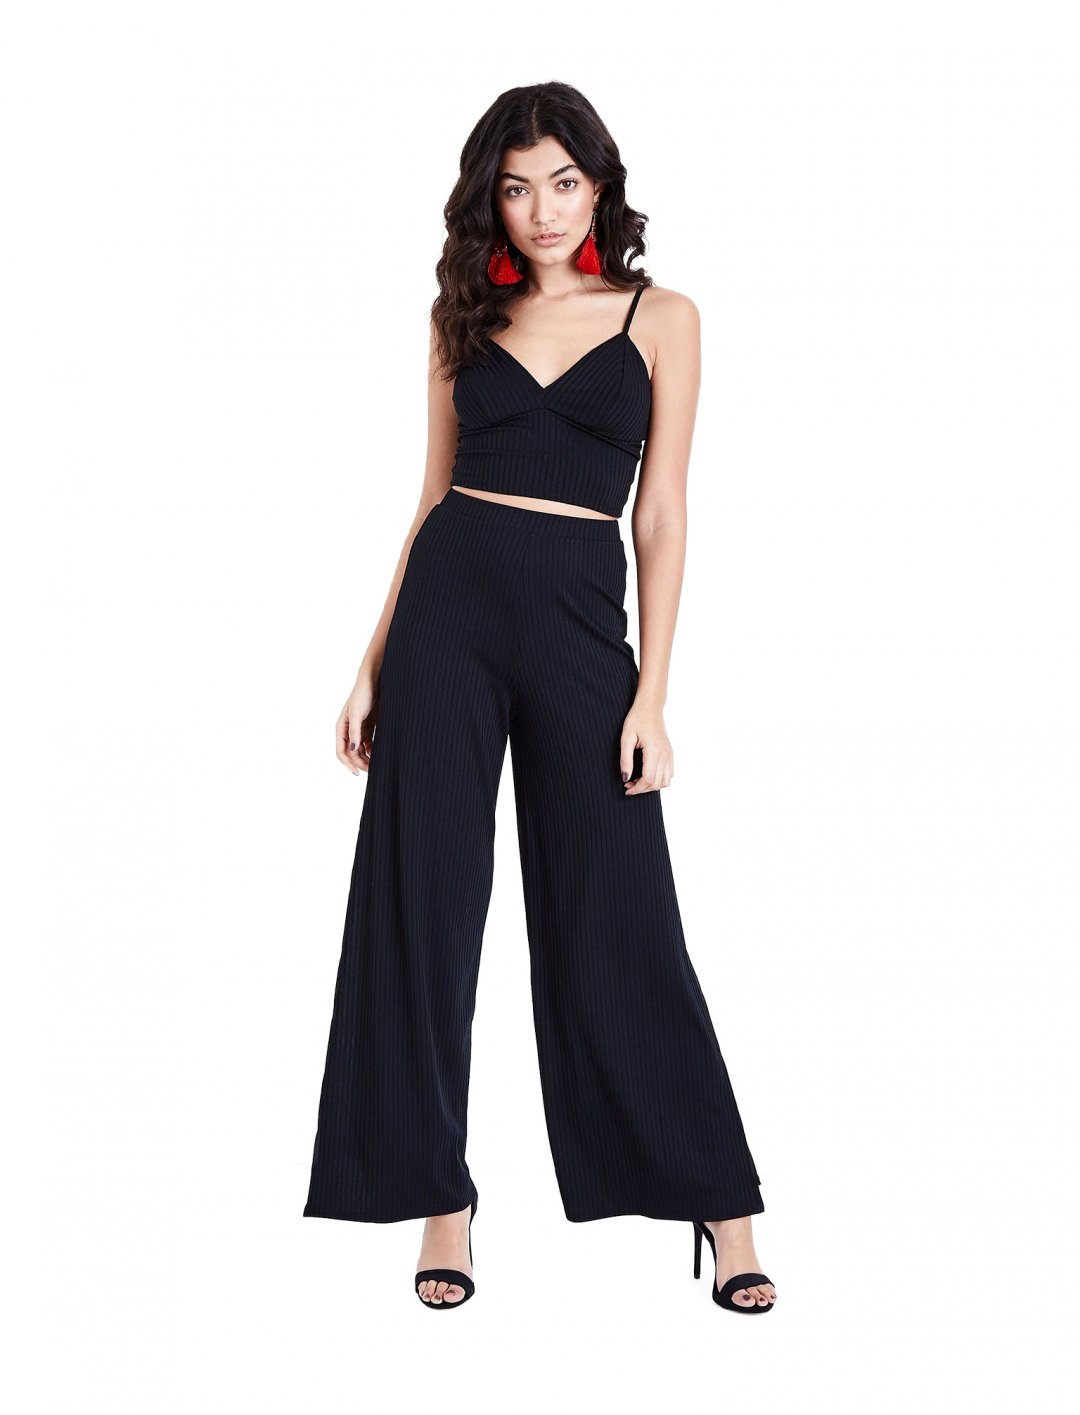 New Look Black Ribbed Bralet Clothing New Look